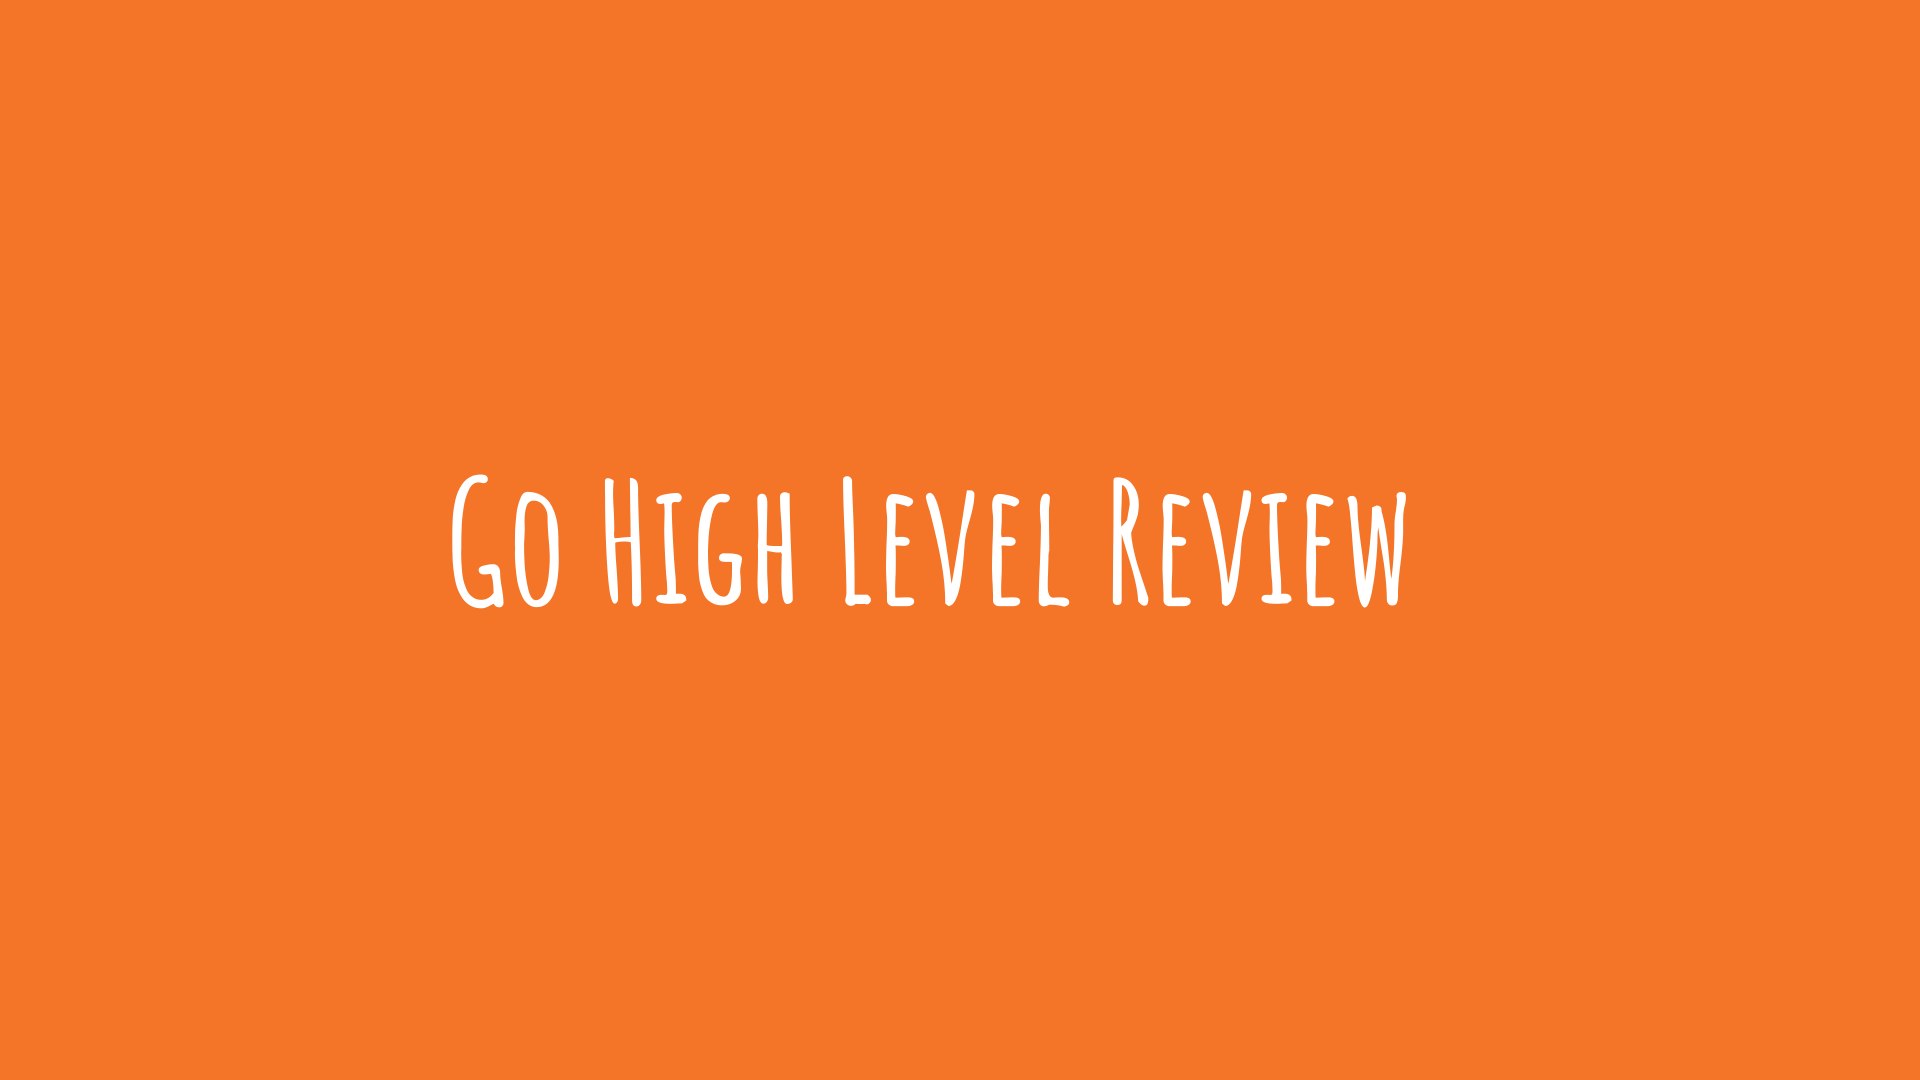 Go High Level Review